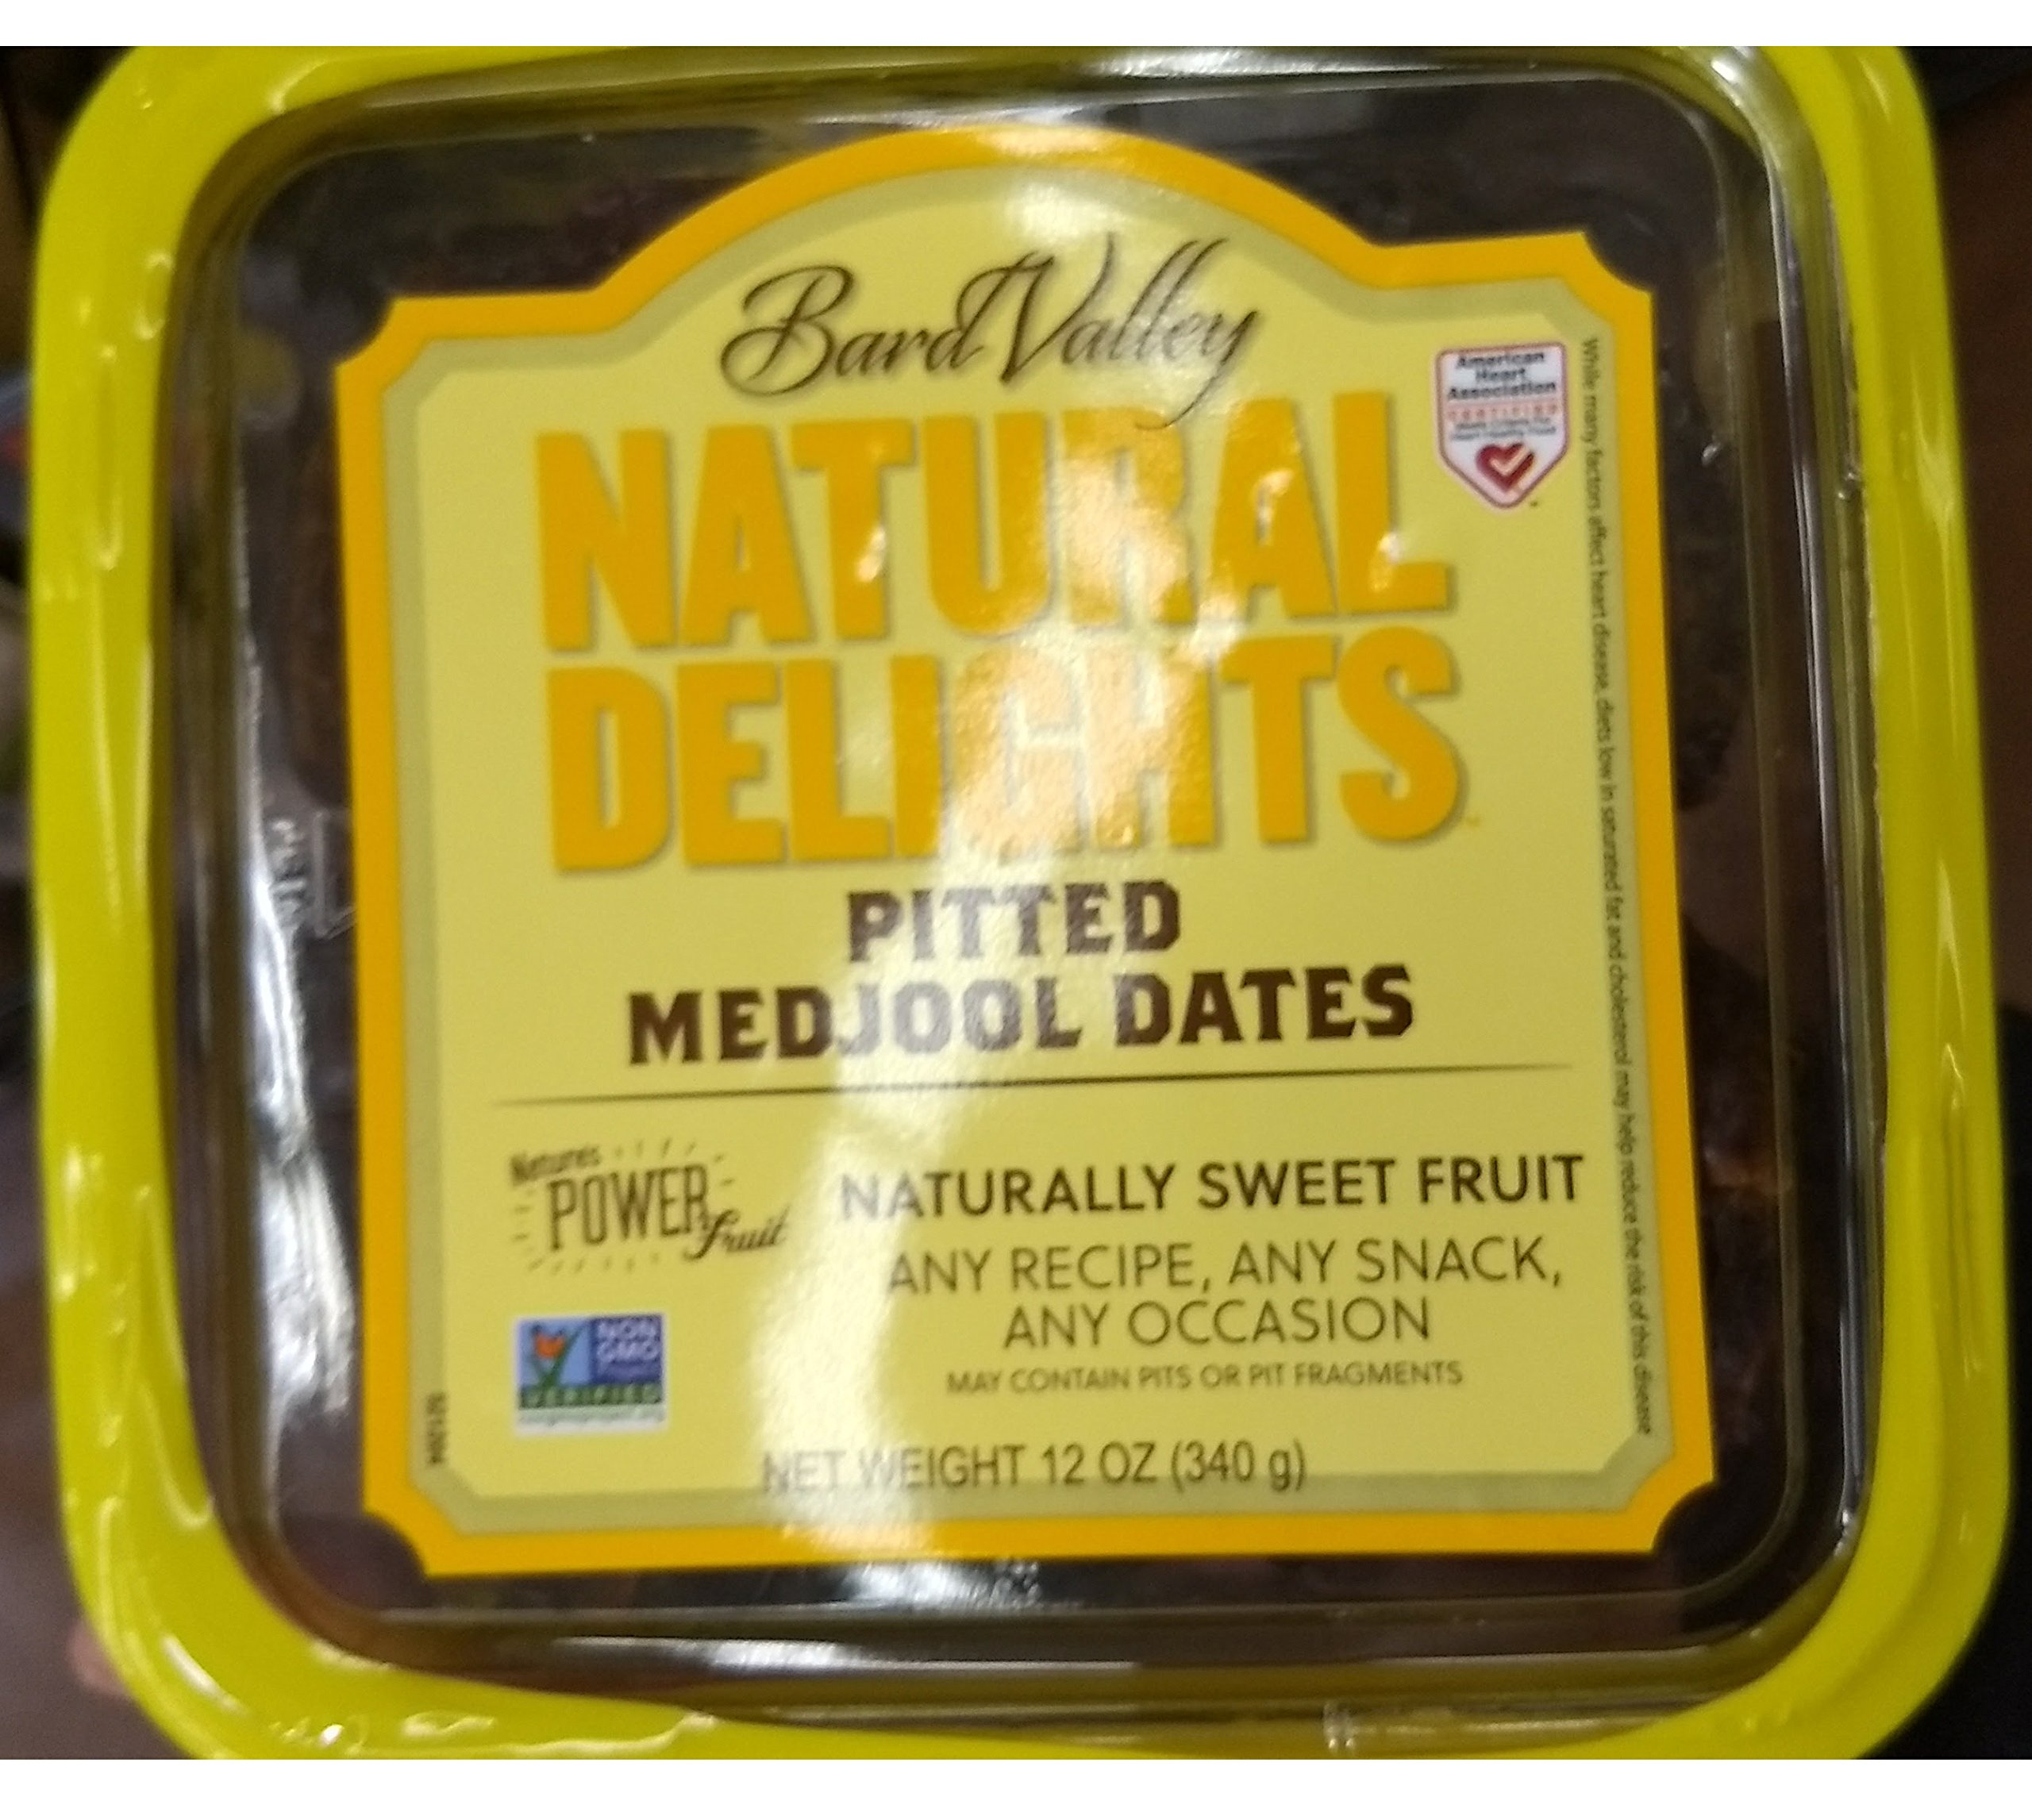 Natural Delights Pitted Medjool Dates, Naturally sweet fruit 12oz, pack of 1 by Natural Delights